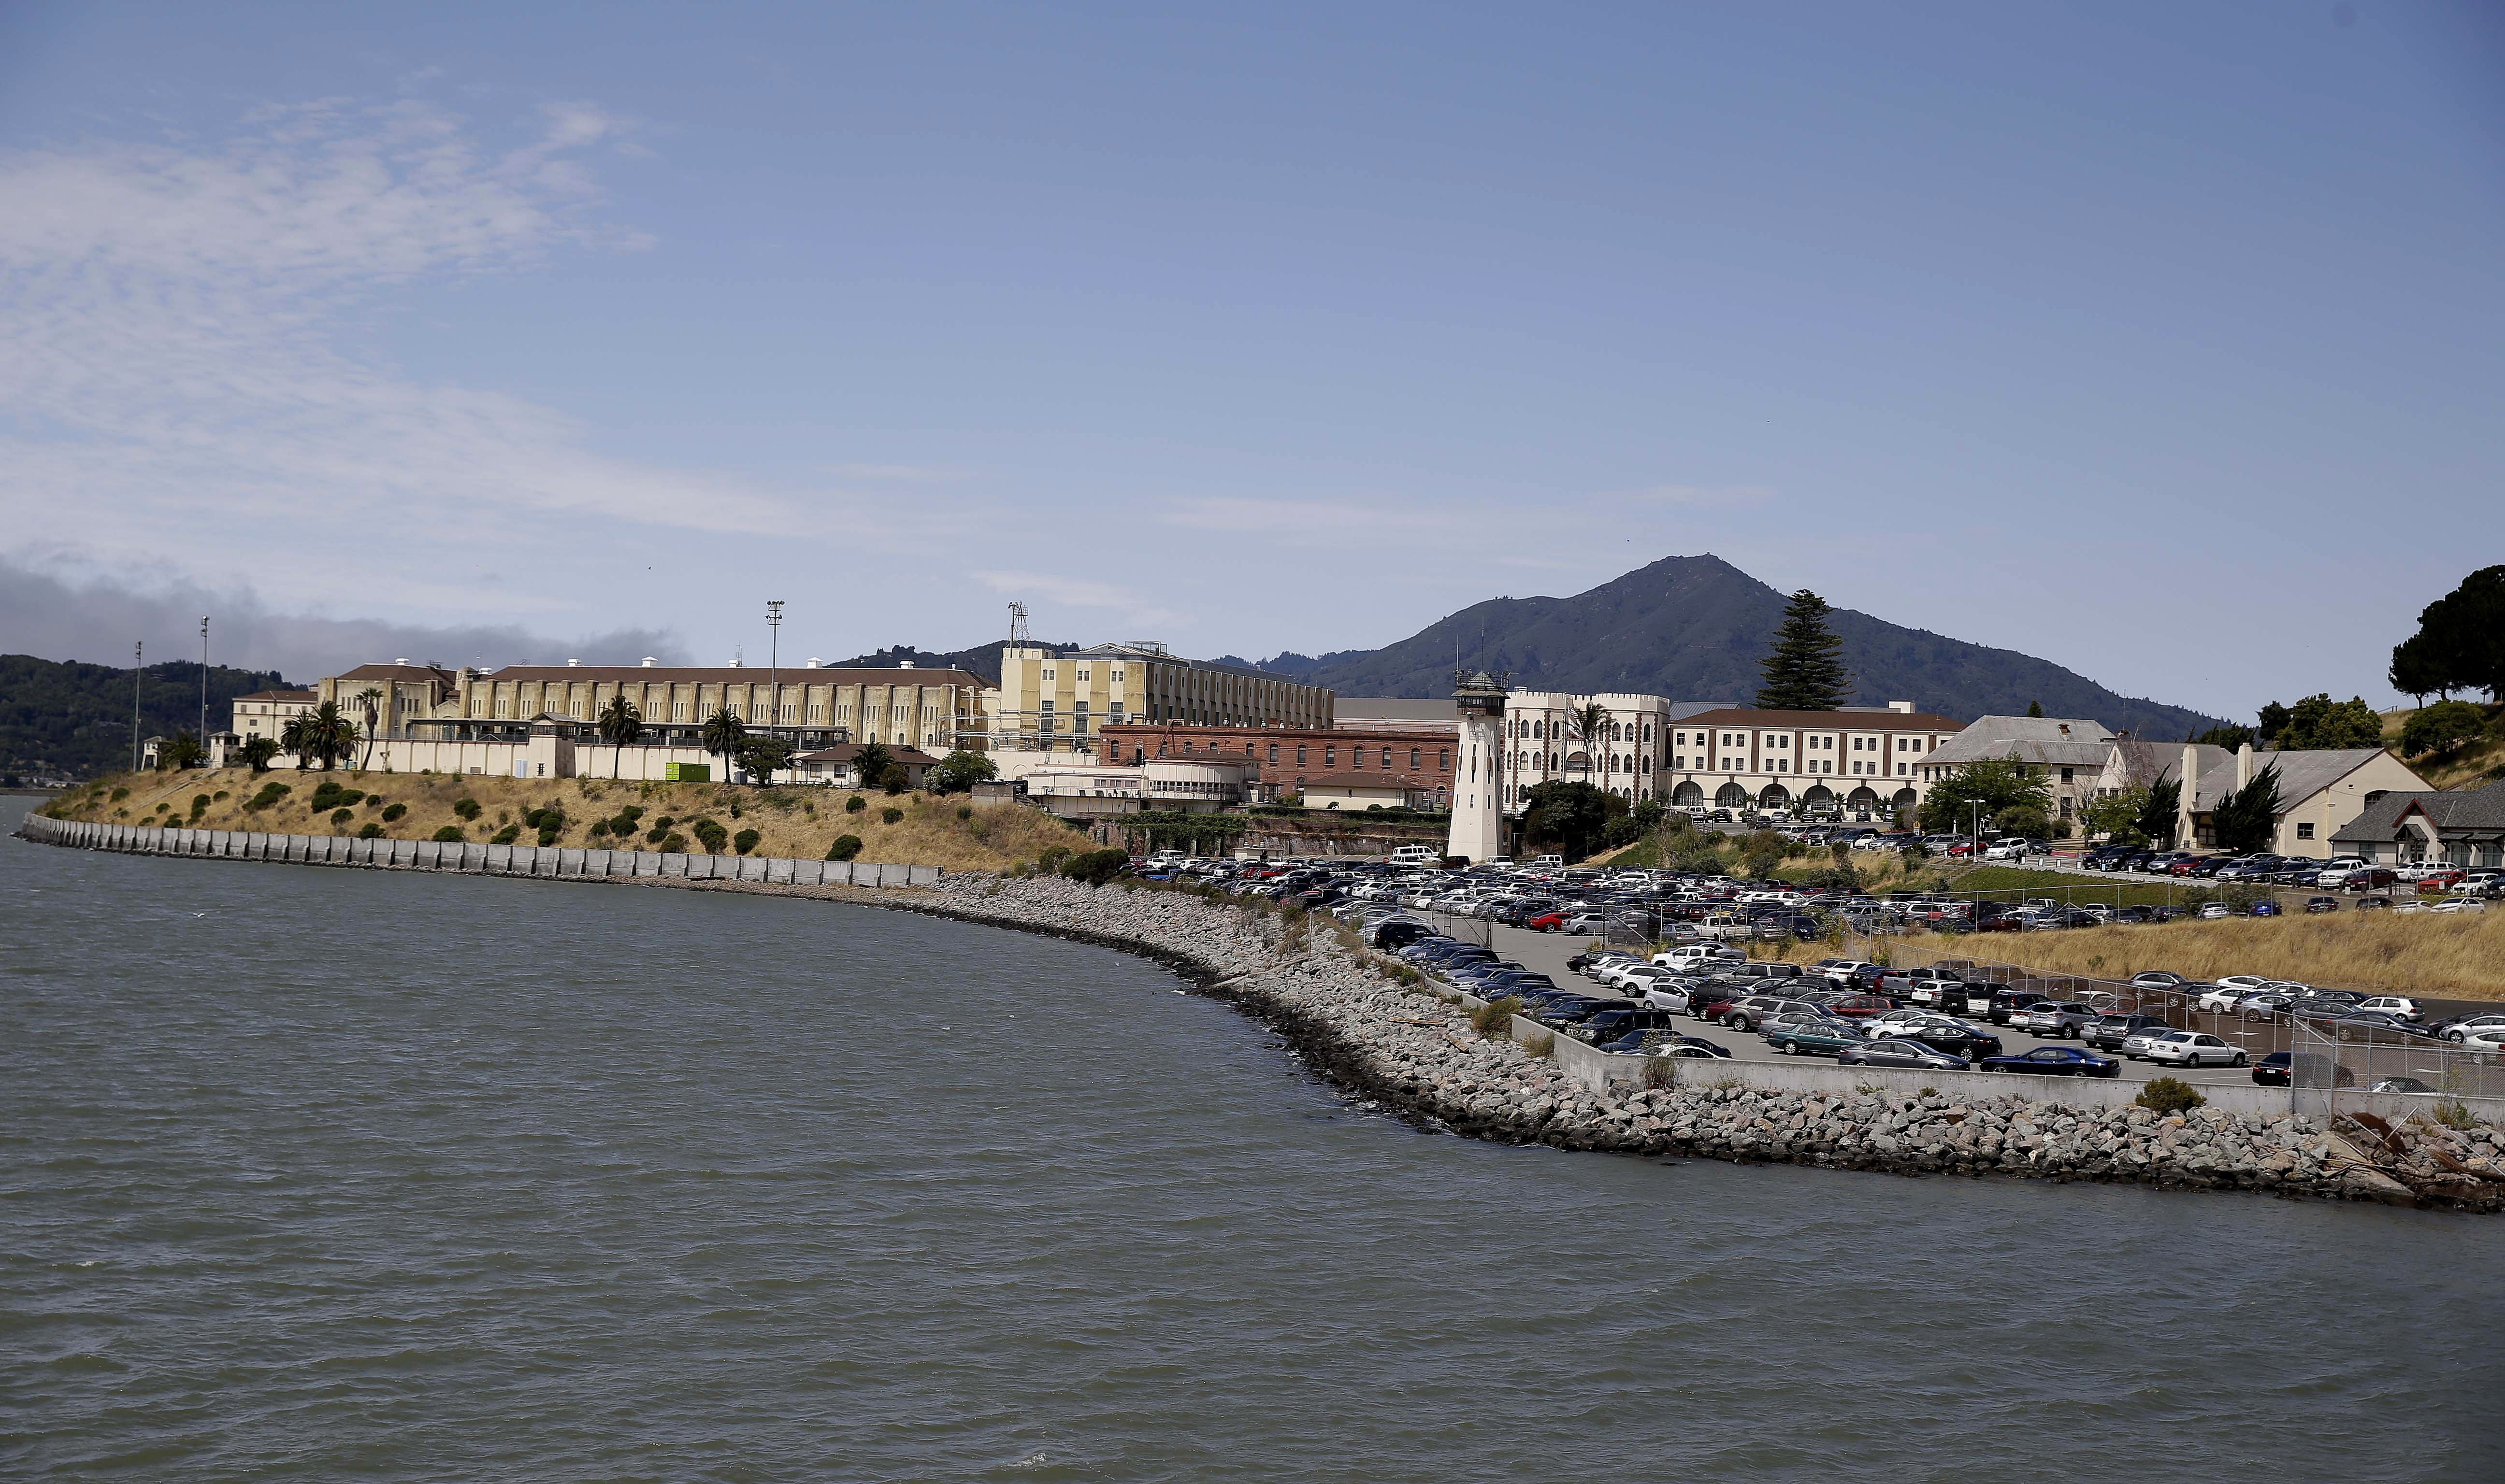 Inmate With Stock Tips Wants To Be San Quentin's Warren Buffett